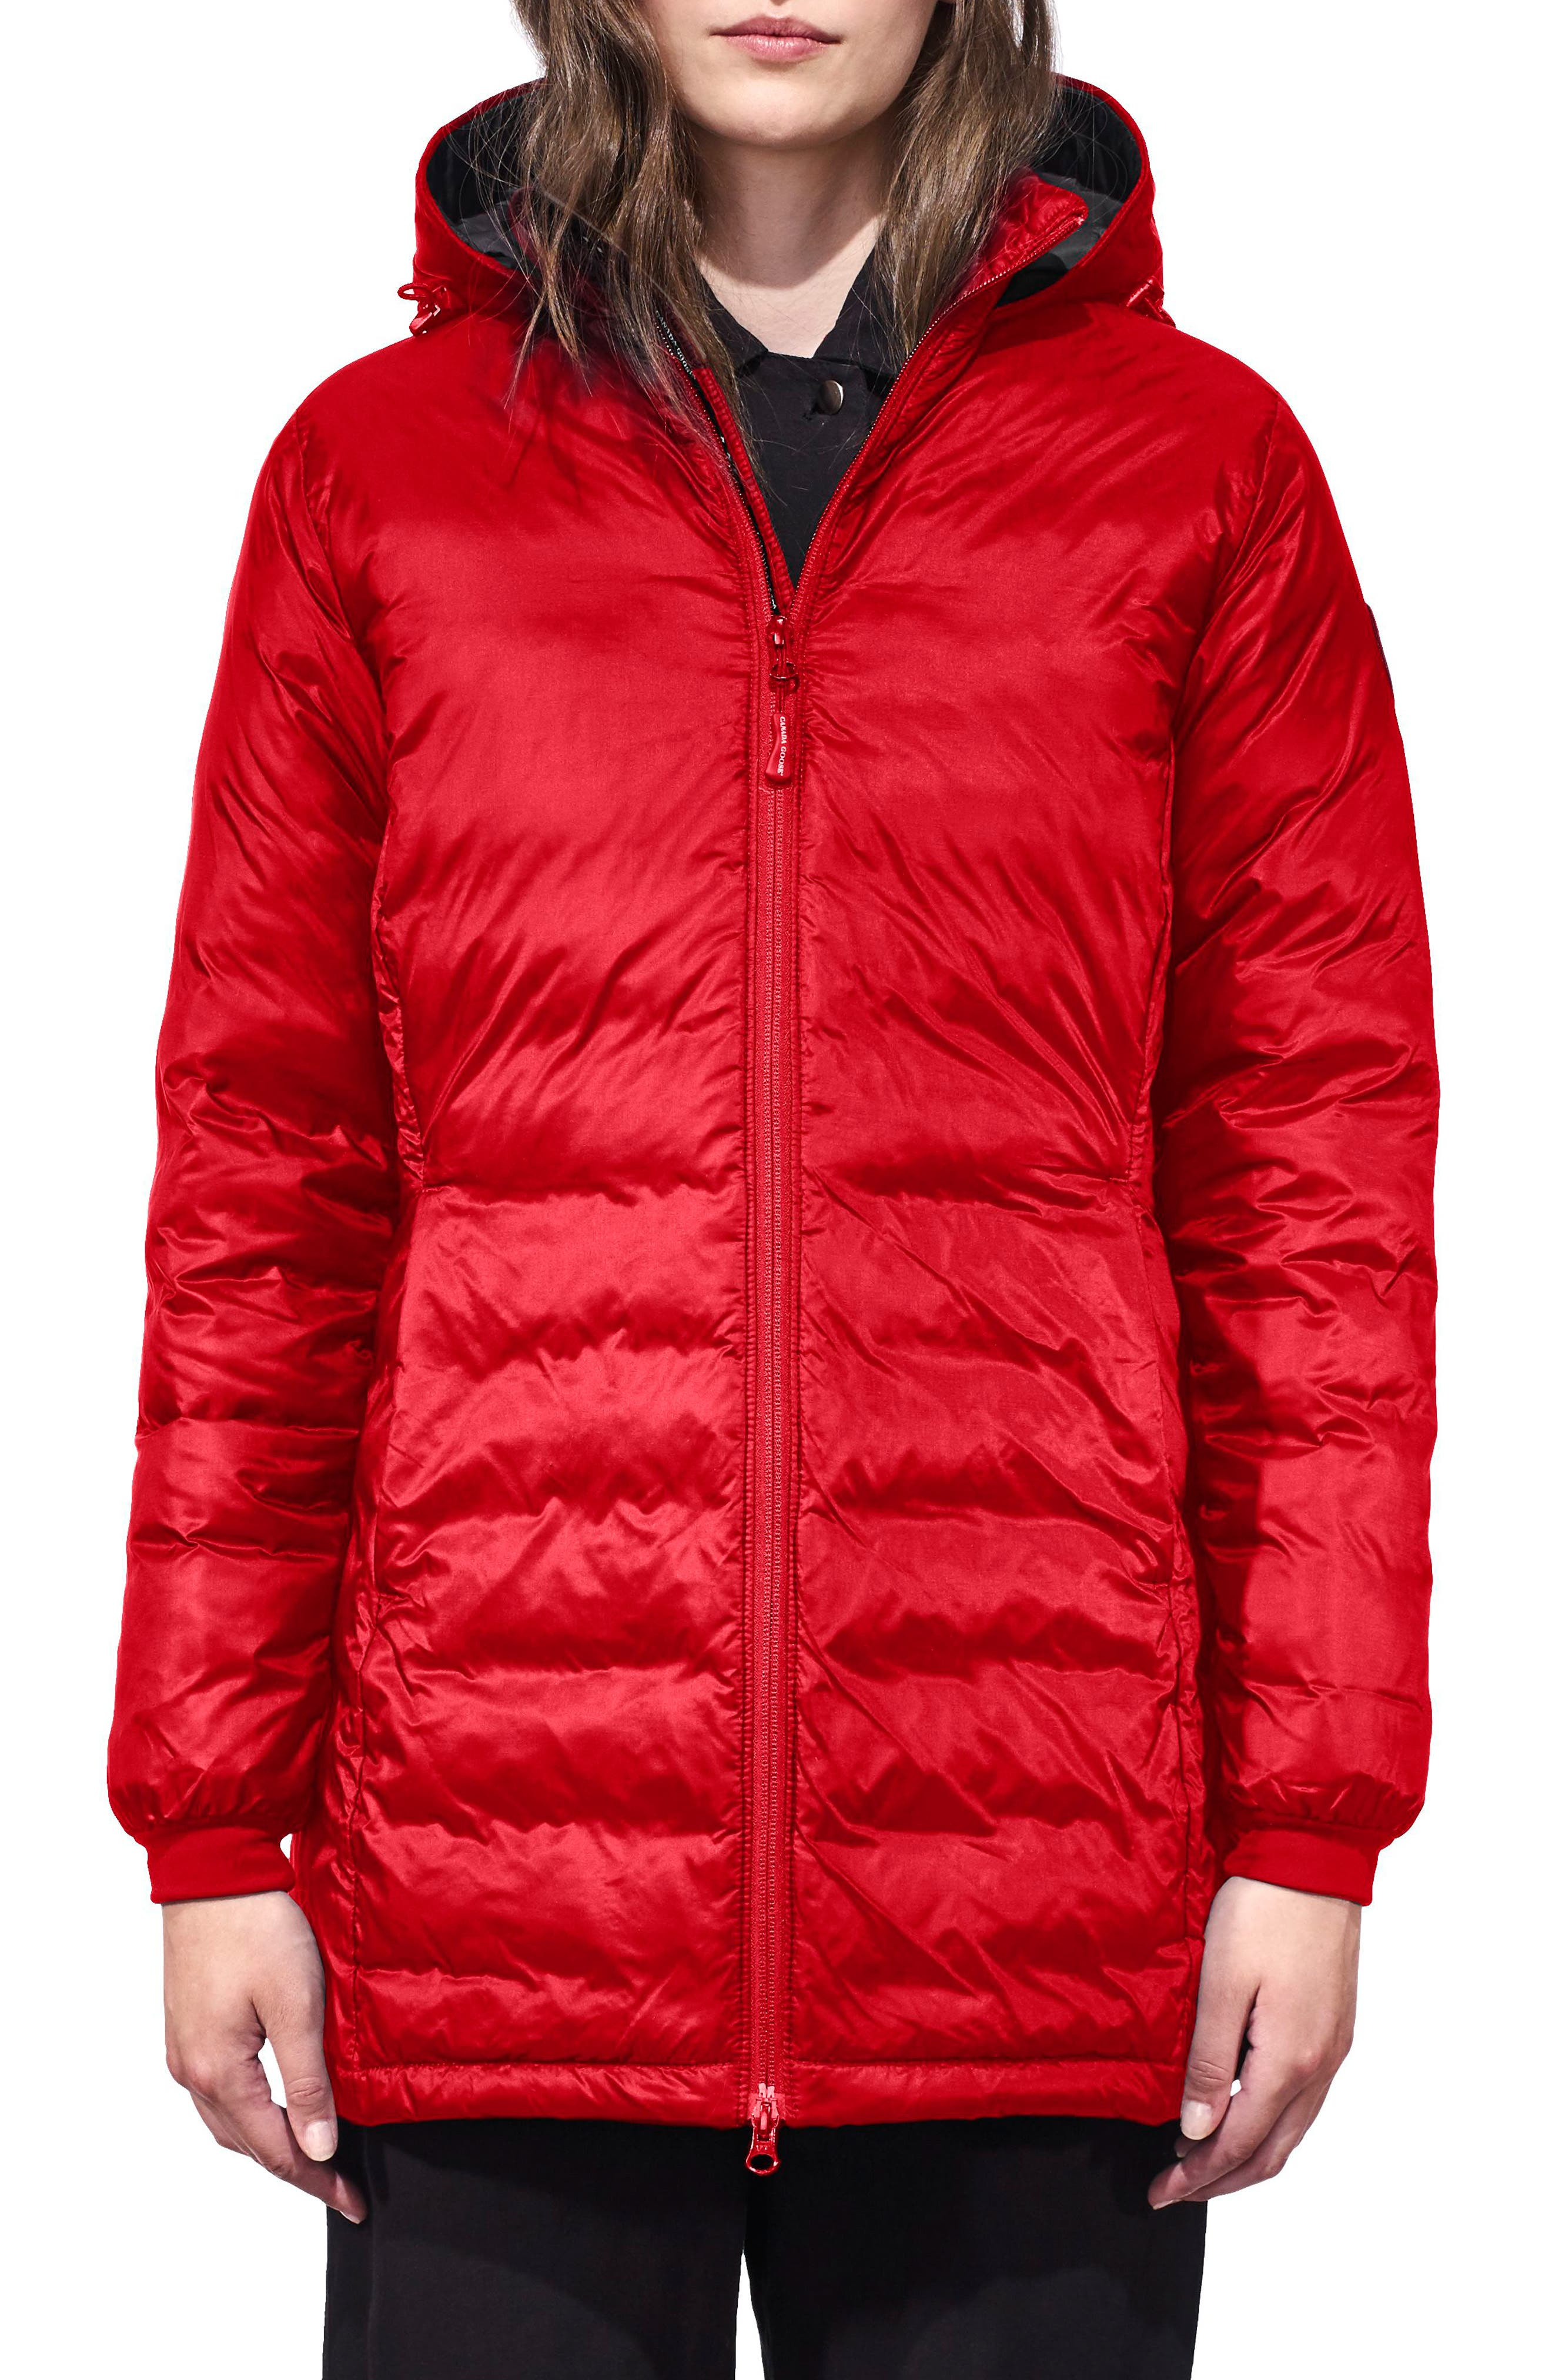 Petite Canada Goose Camp Fusion Fit Packable Down Jacket, P (000-00P) - Red